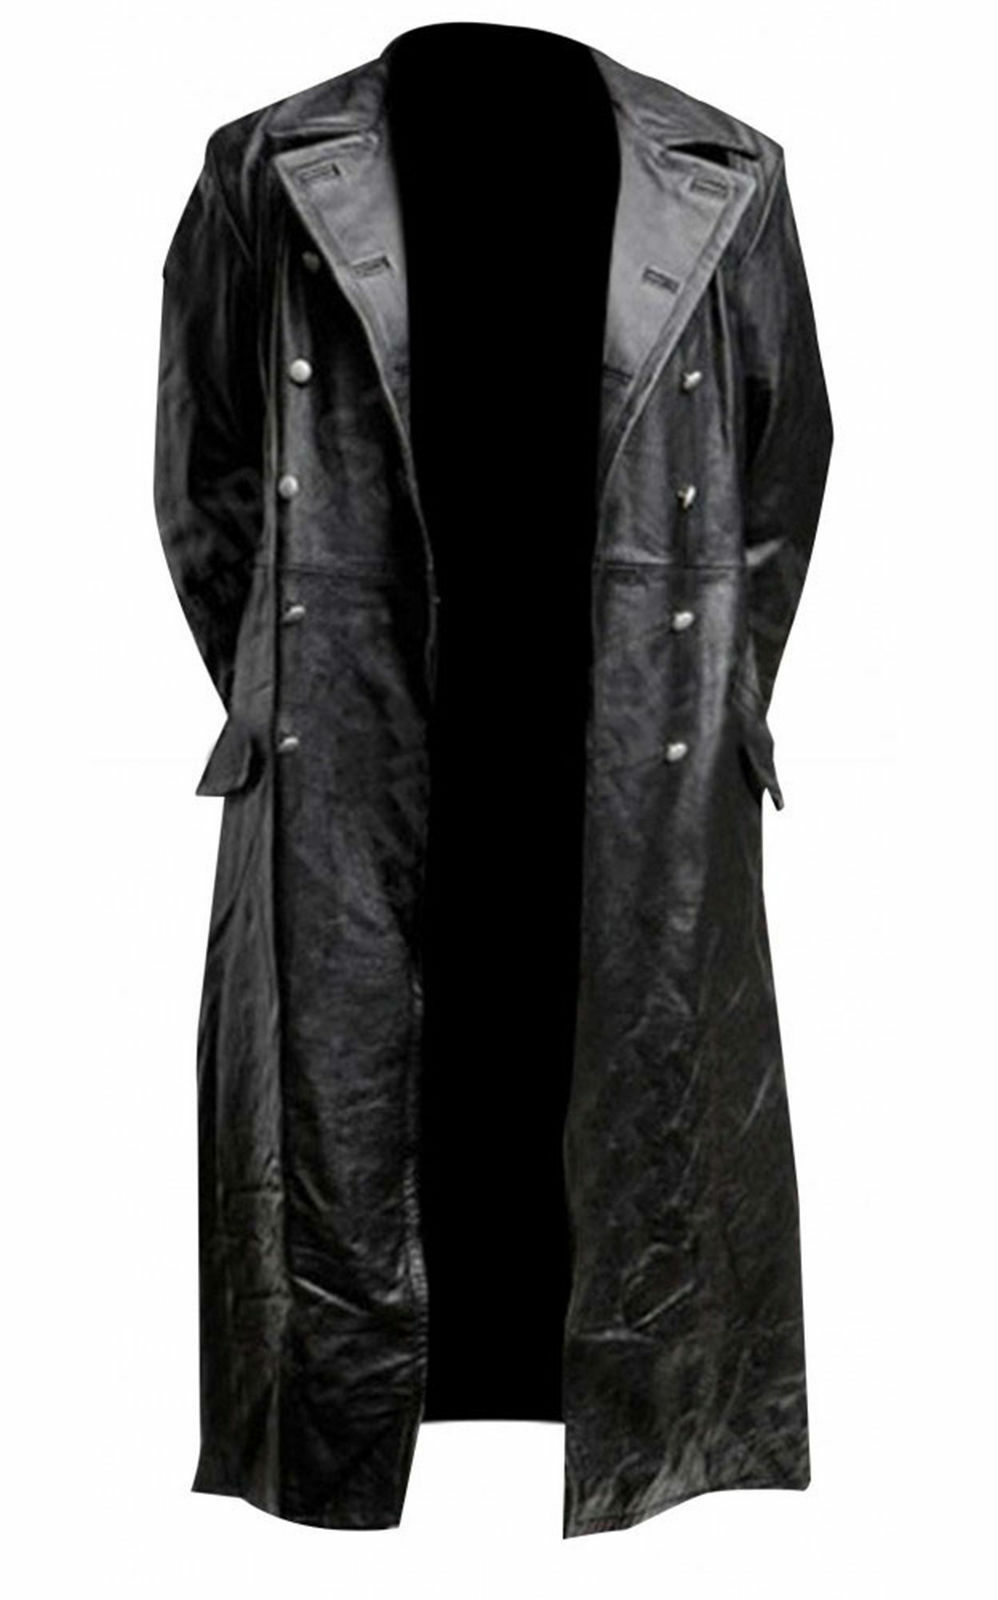 German Classic Officer Military High Quality Real & Faux Leder Trench Coat